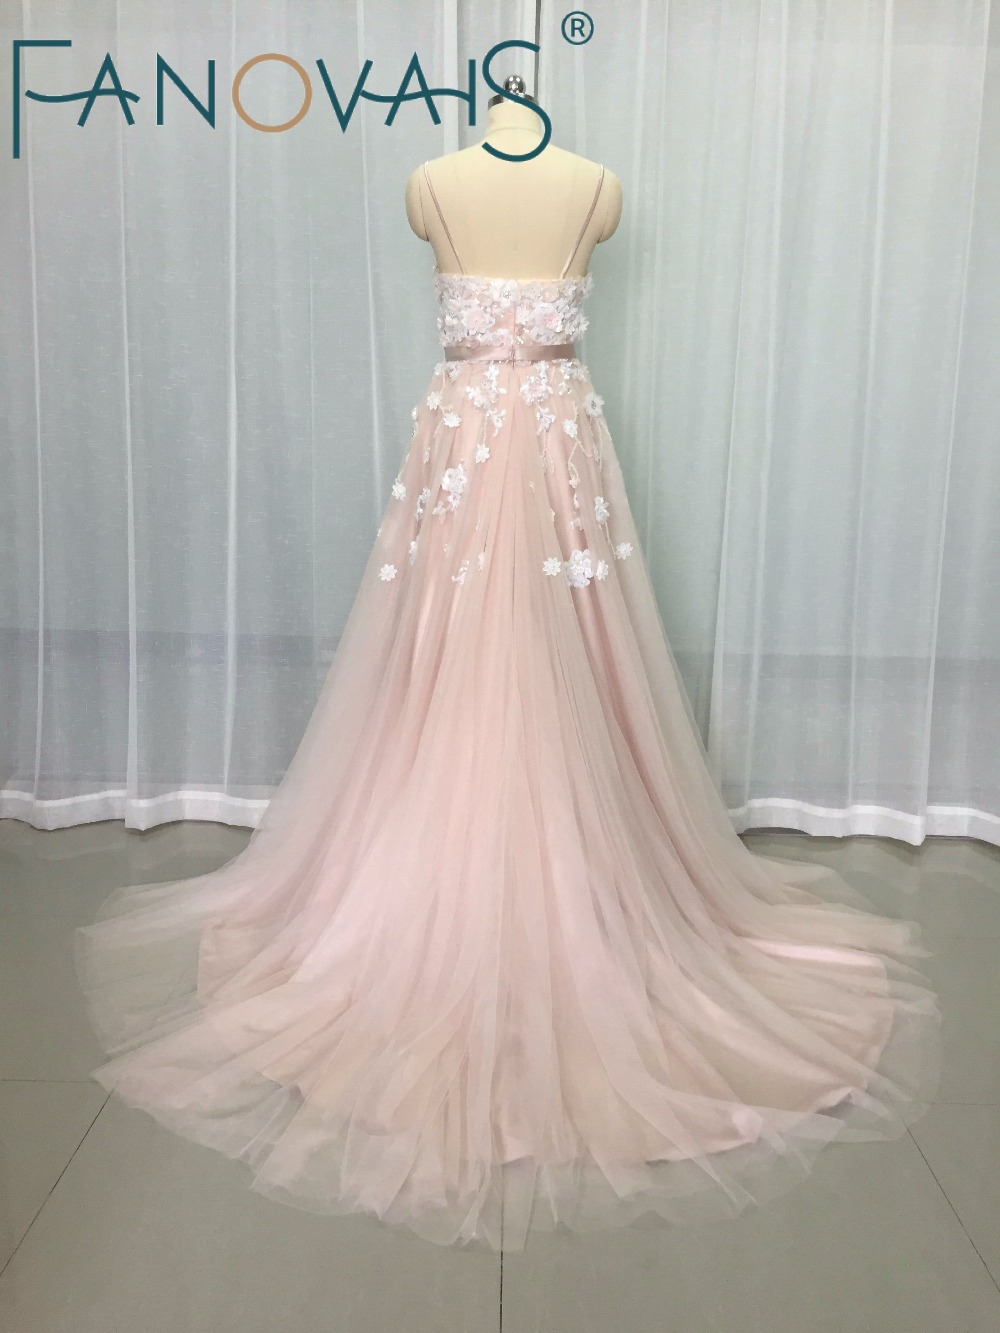 Vintage Blush Pink Wedding Dresses Flower Beads Beach Boho Bridal Gowns  robe de maree Elegant Wedding Gowns Tulle Wedding Dress 193e3efdf7b7